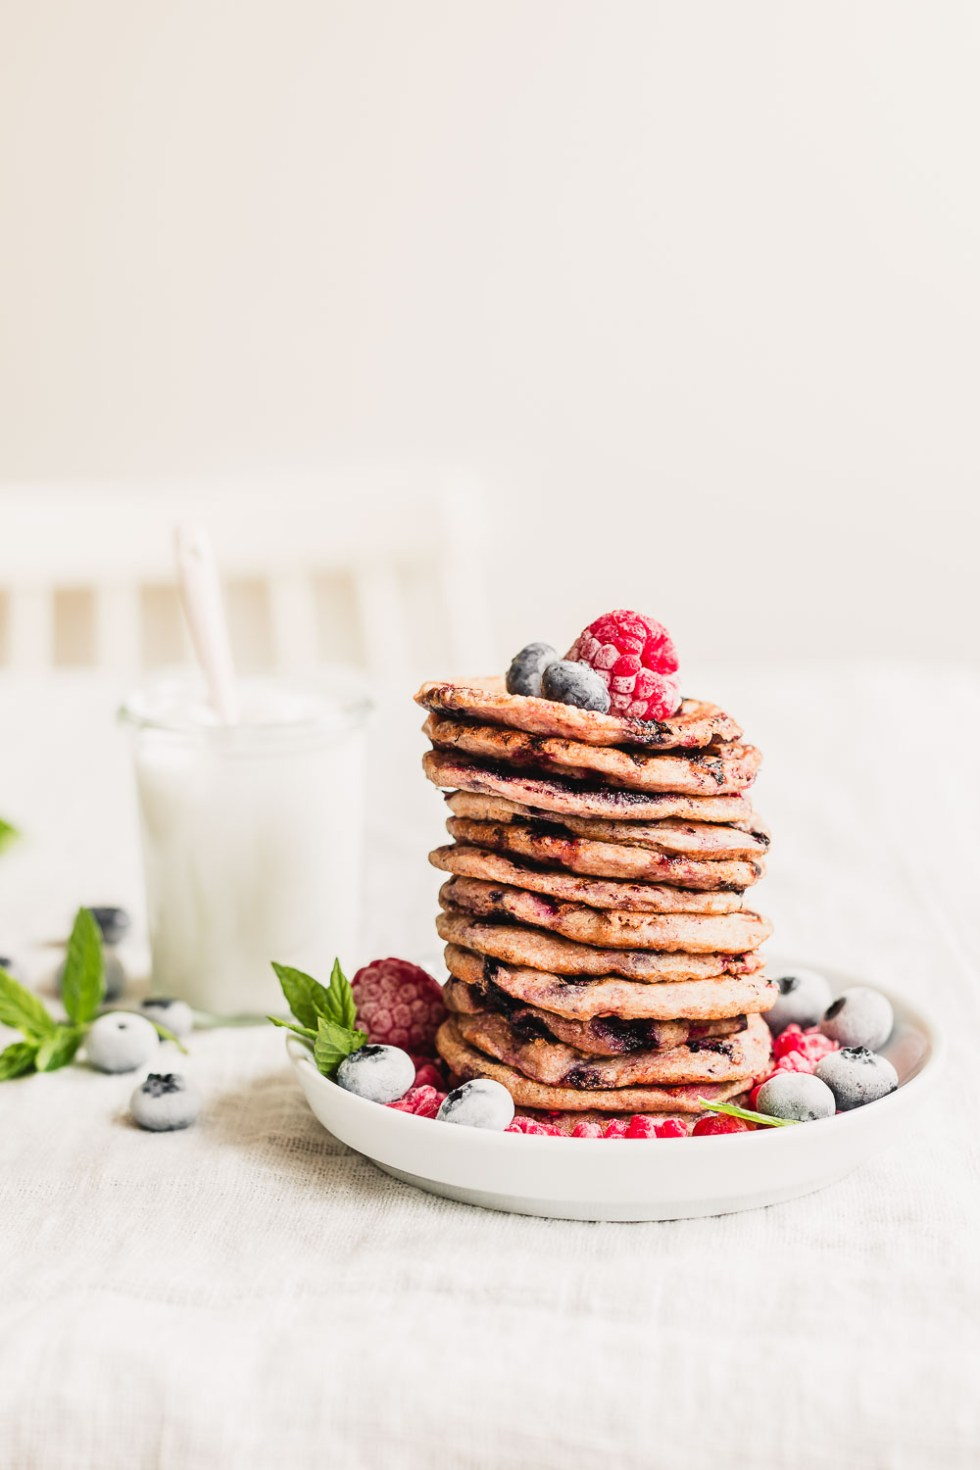 Vegan raspberry blueberry yogurt pancakes